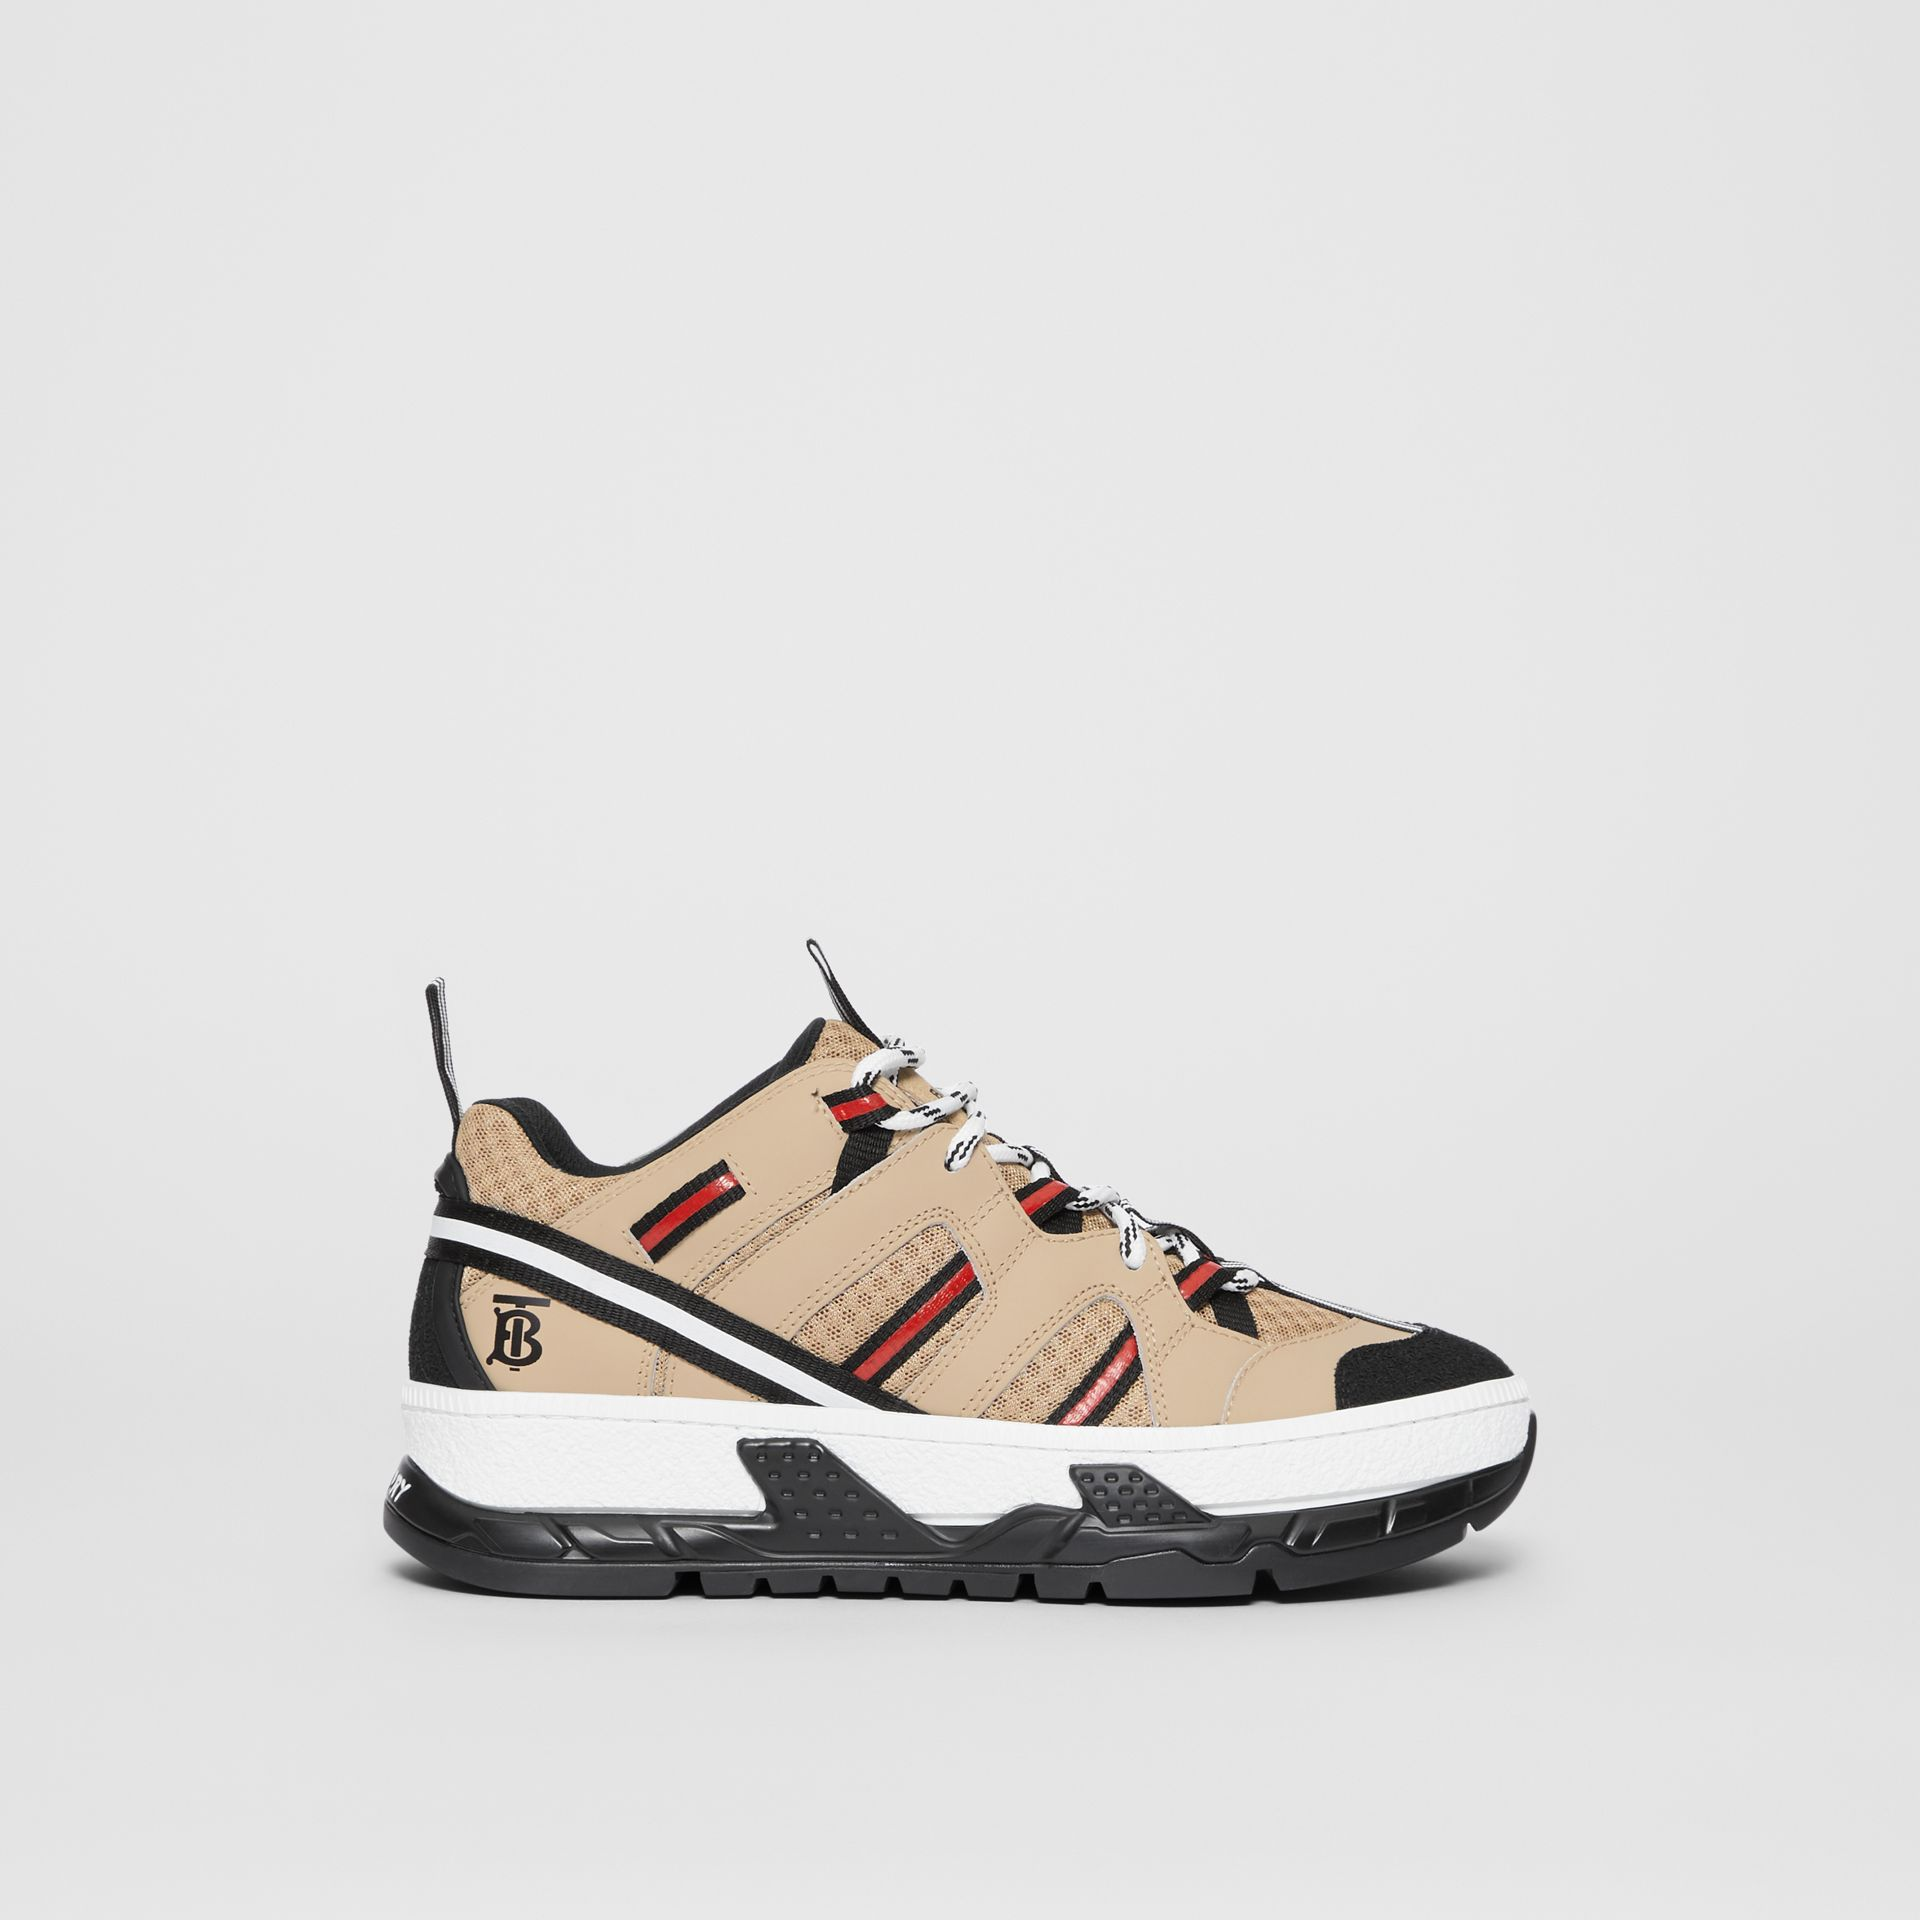 Monogram Motif Mesh and Leather Sneakers in Beige - Women | Burberry - gallery image 4